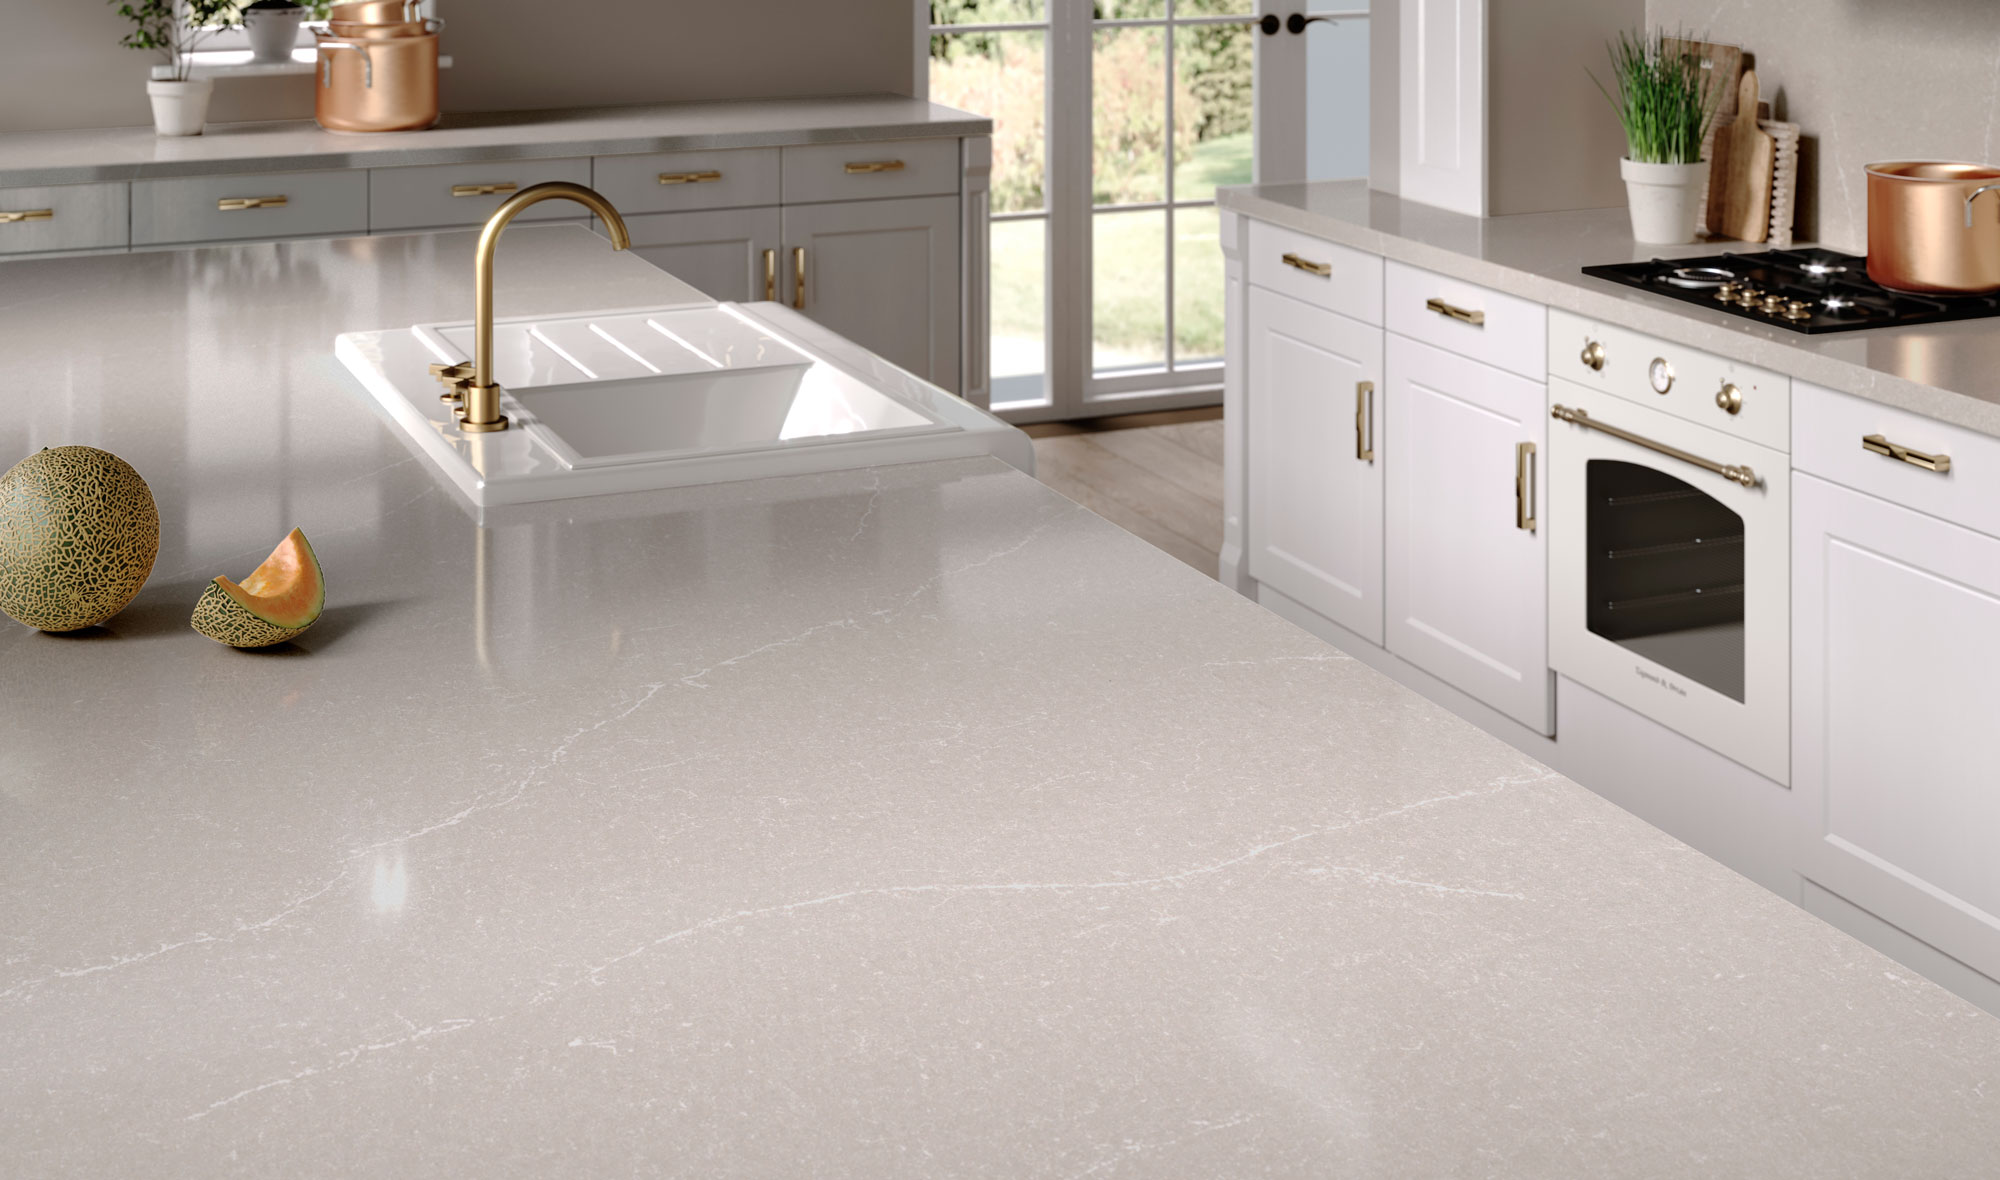 What Is The New Trend For Kitchen Countertops